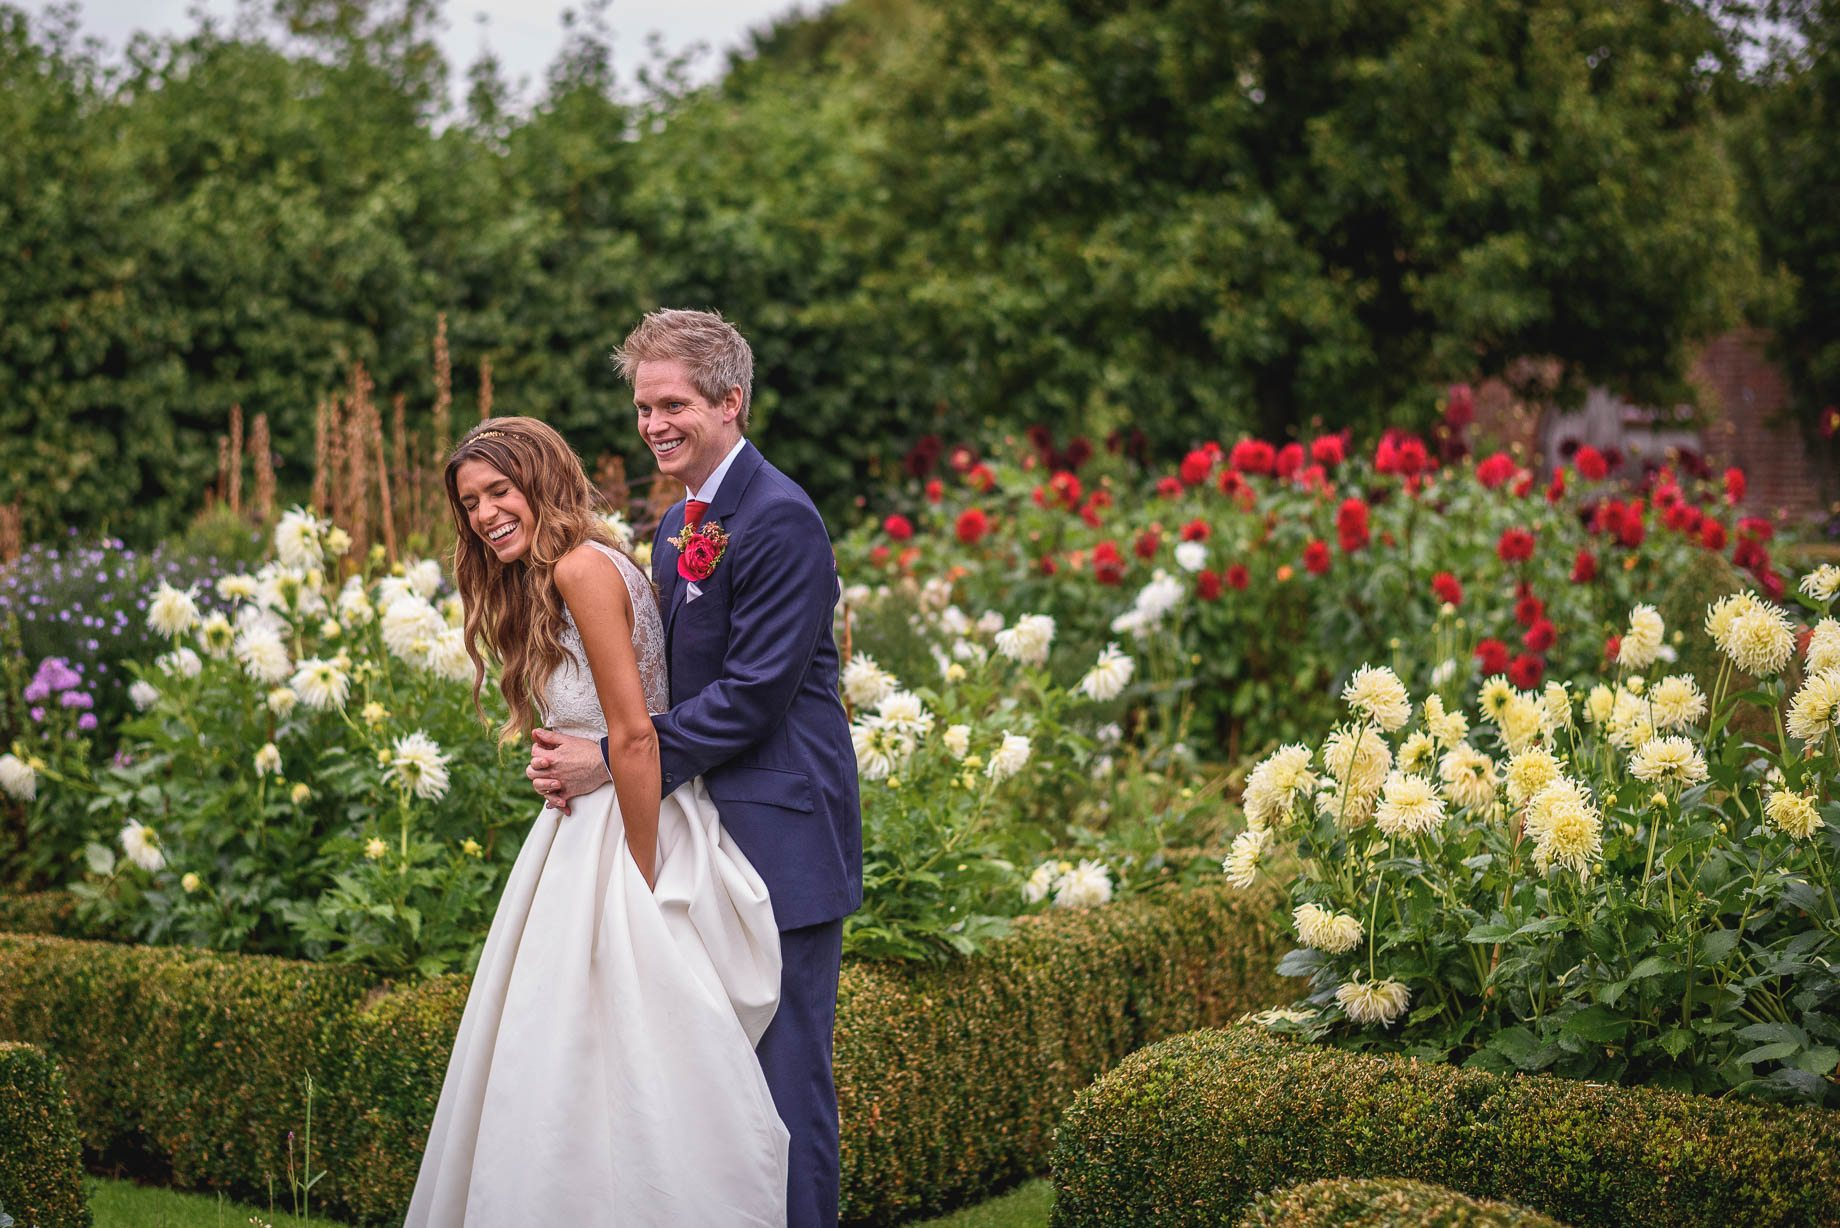 surrey-wedding-photography-guy-collier-photography-claire-and-tom-184-of-227